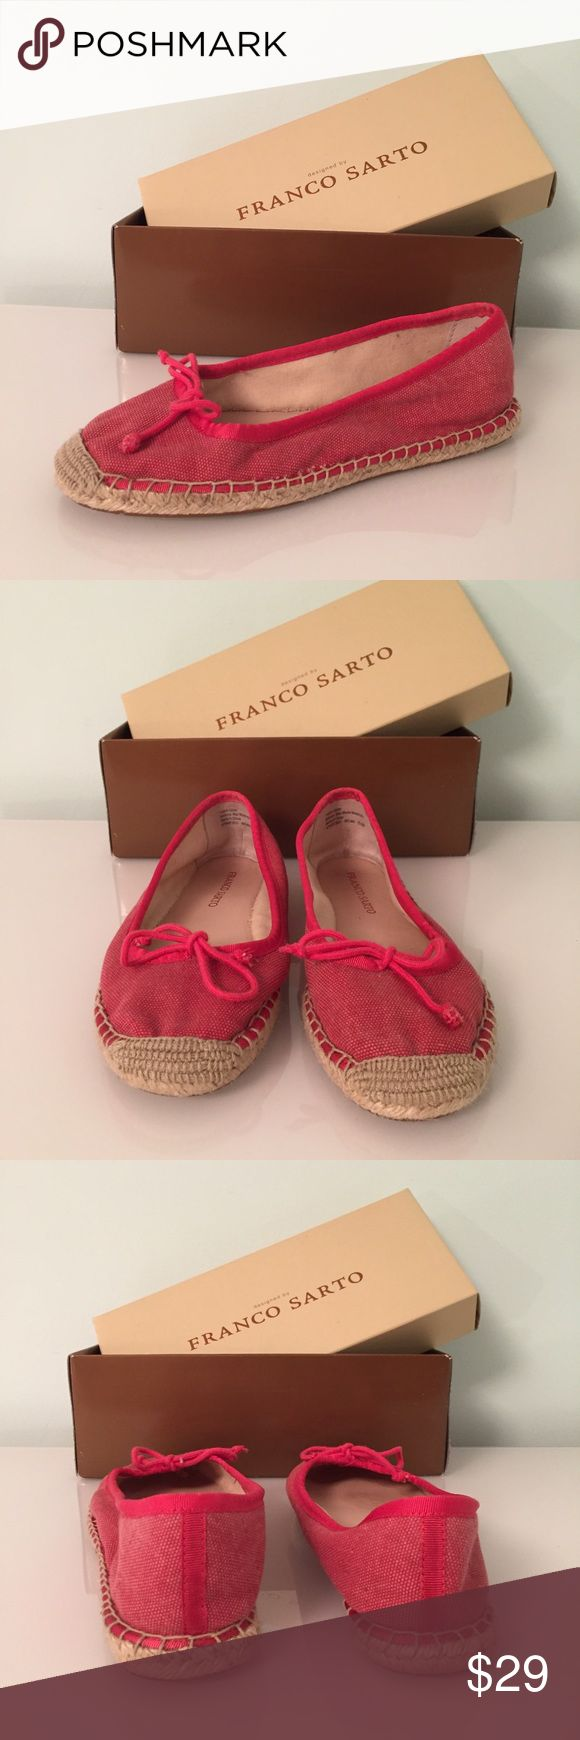 Franco Sarto Coral Pink Espadrilles Flats Bow 8.5 Franco Sarto espadrilles / flats. Color is pink / coral and includes a small bow on top. Size 8.5. Franco Sarto Shoes Espadrilles